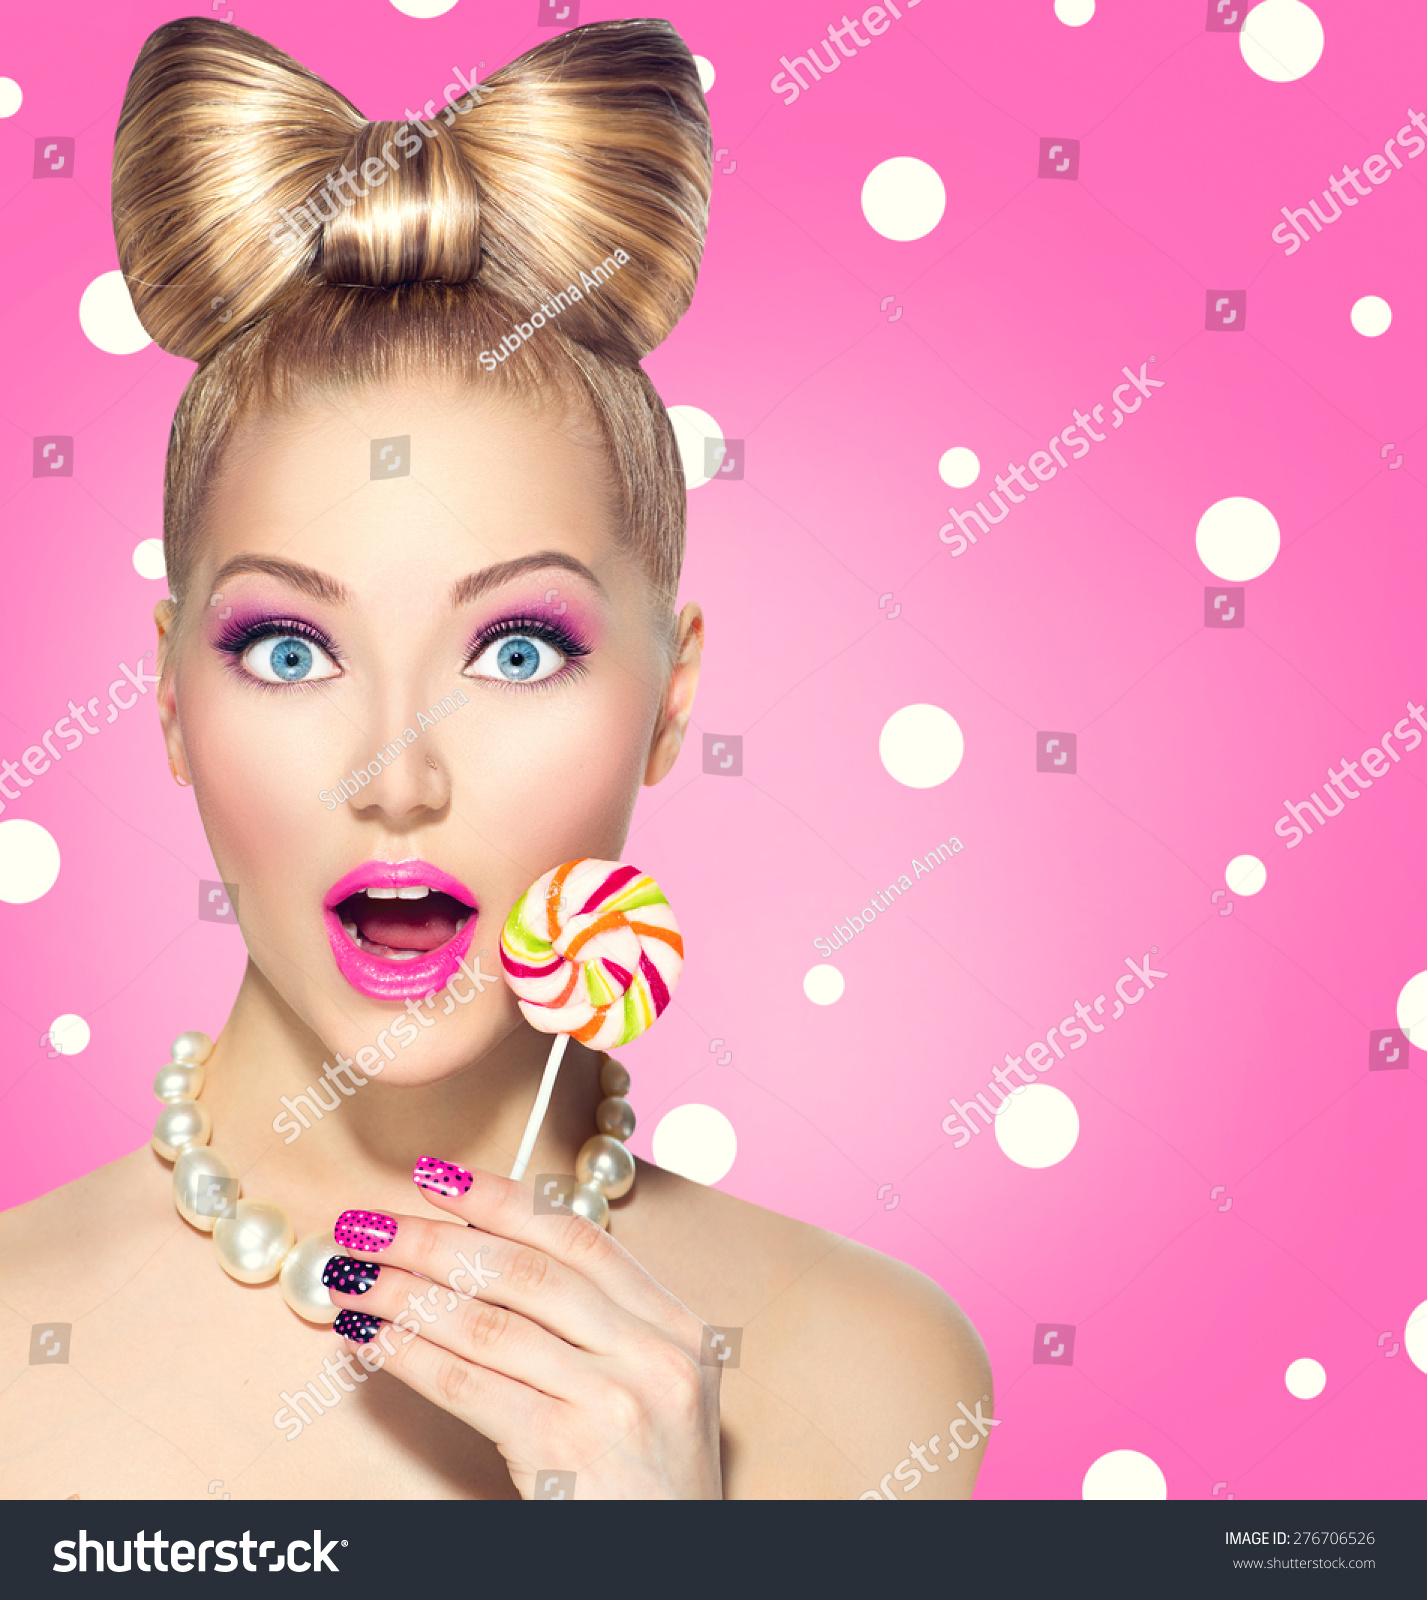 ... colourful lollipop. Surprised Young funny woman with bow hairstyle